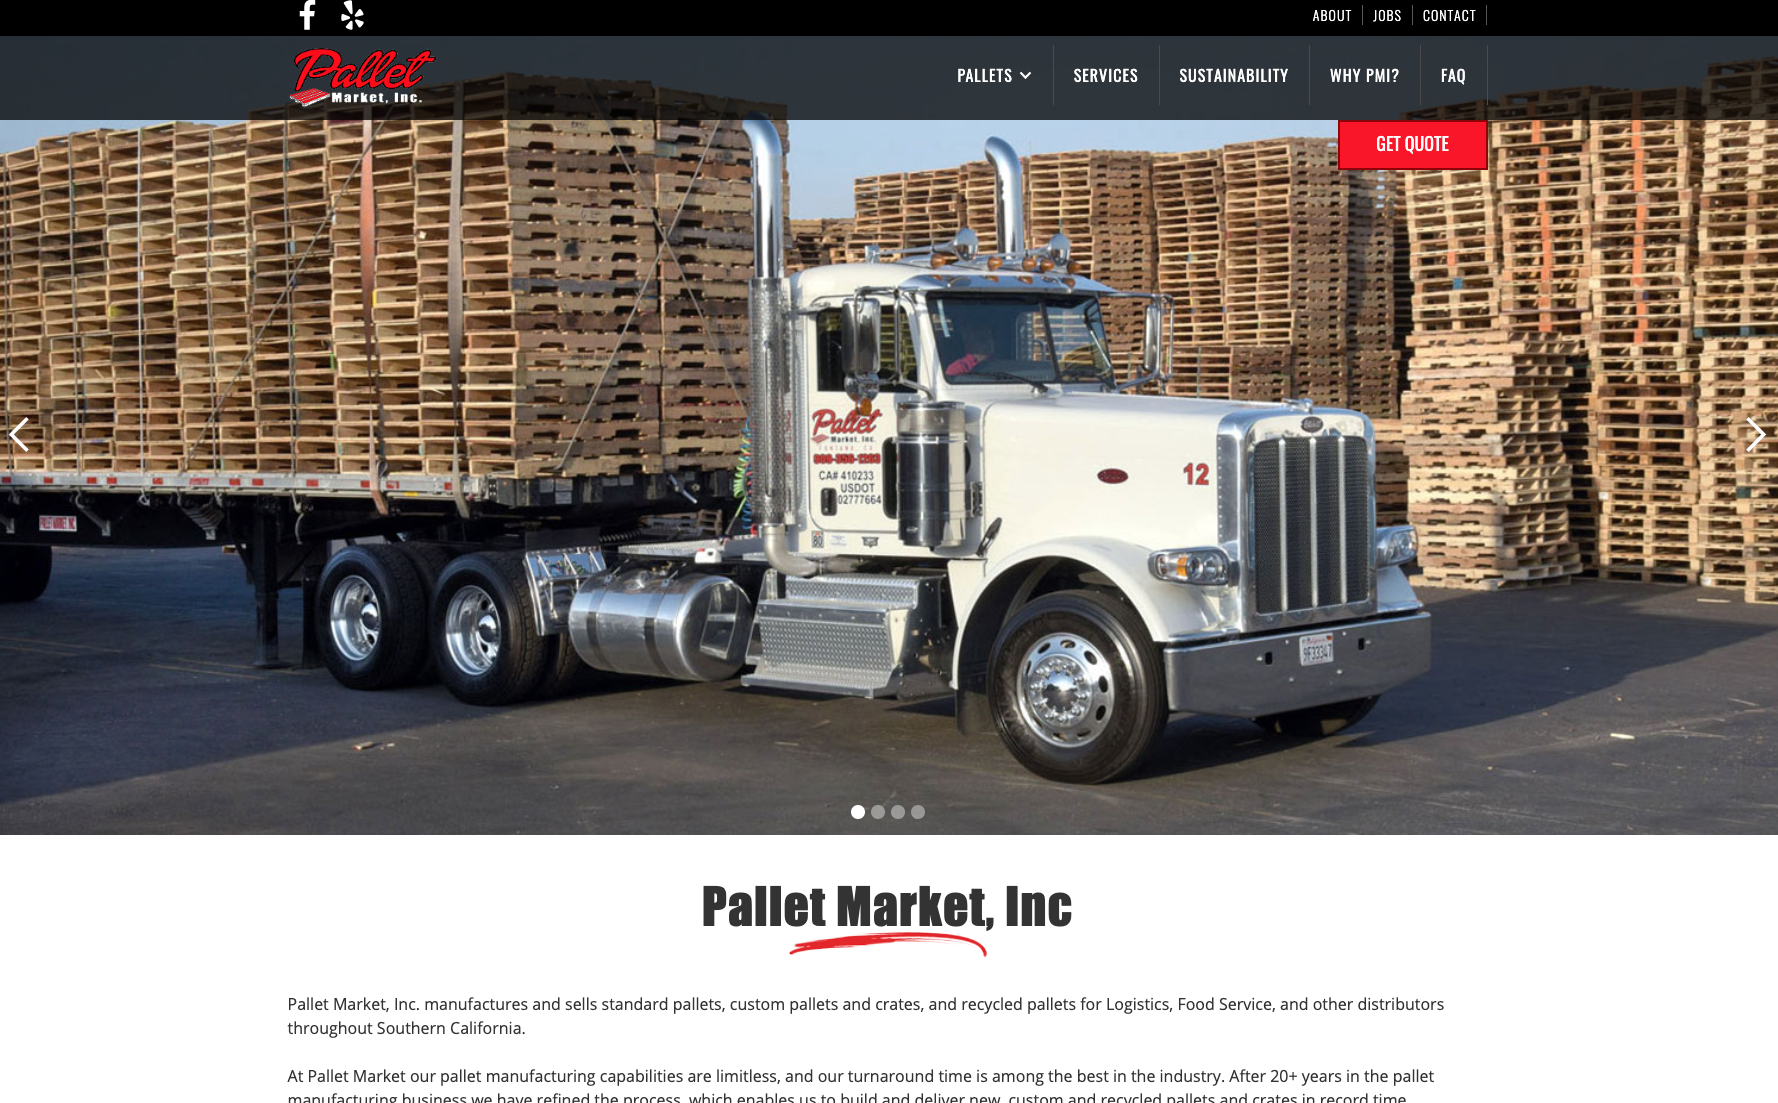 Pallet Market, INC. website across screens